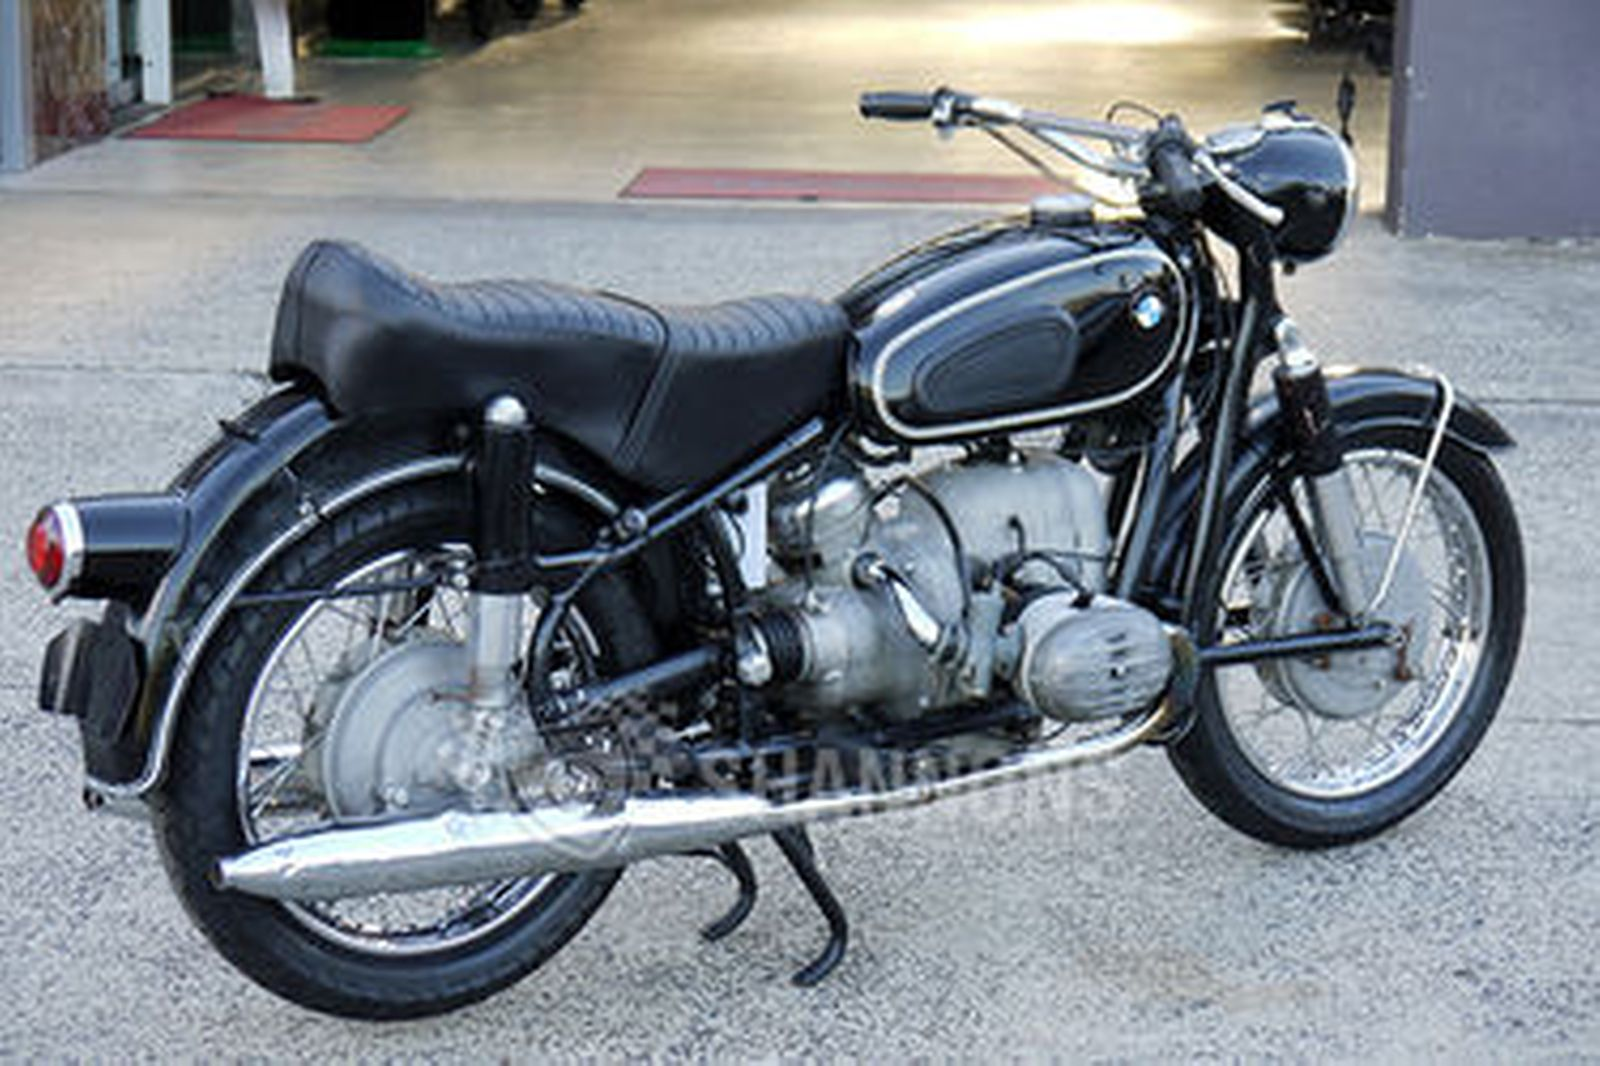 bmw r60 2 600cc solo motorcycle auctions lot 39 shannons. Black Bedroom Furniture Sets. Home Design Ideas